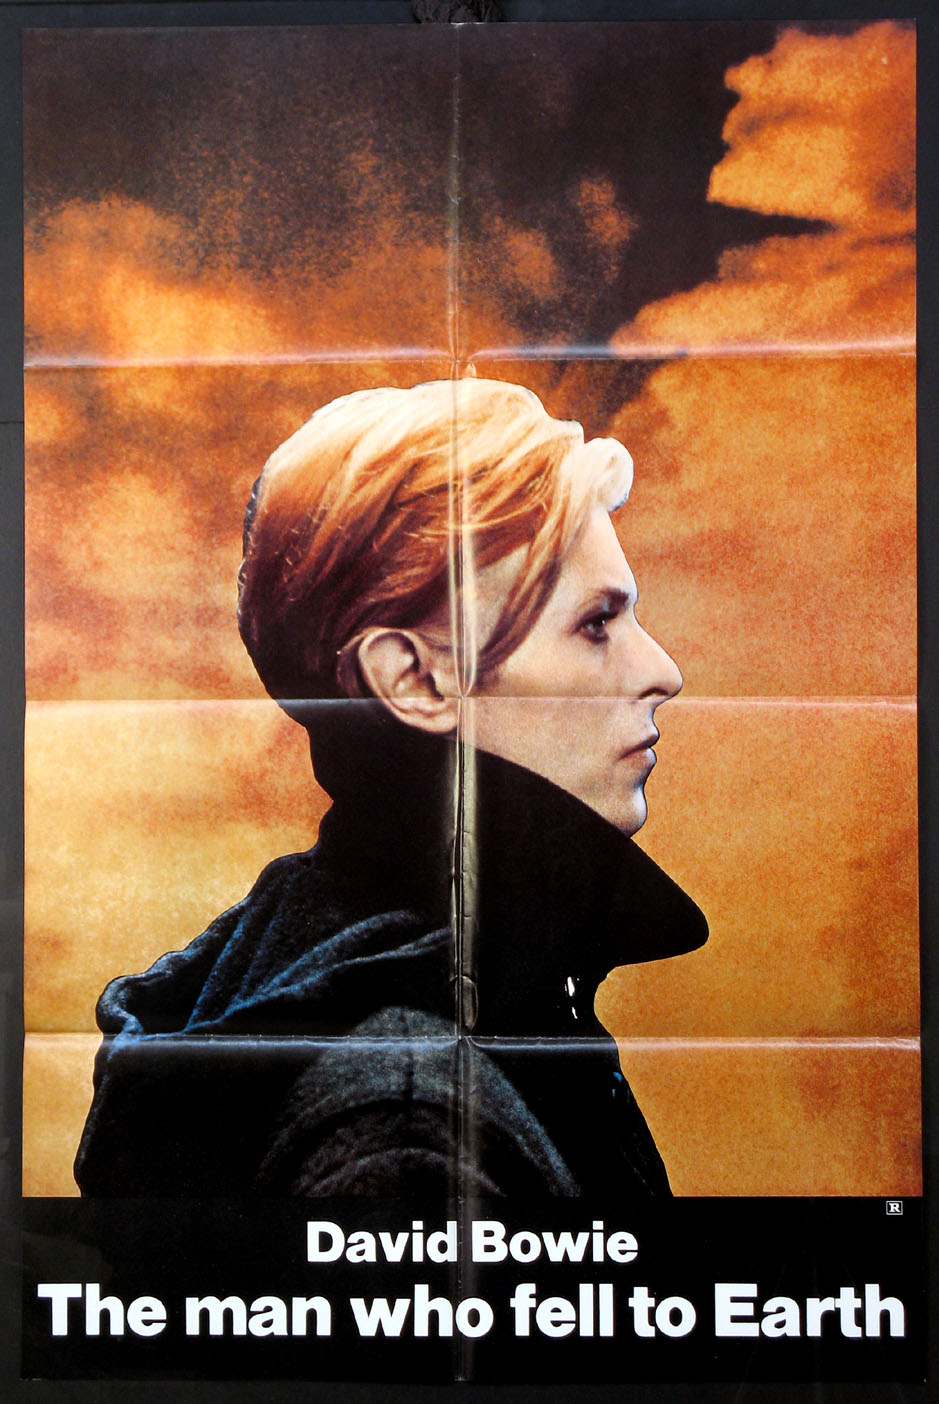 MAN WHO FELL TO EARTH, THE @ FilmPosters.com